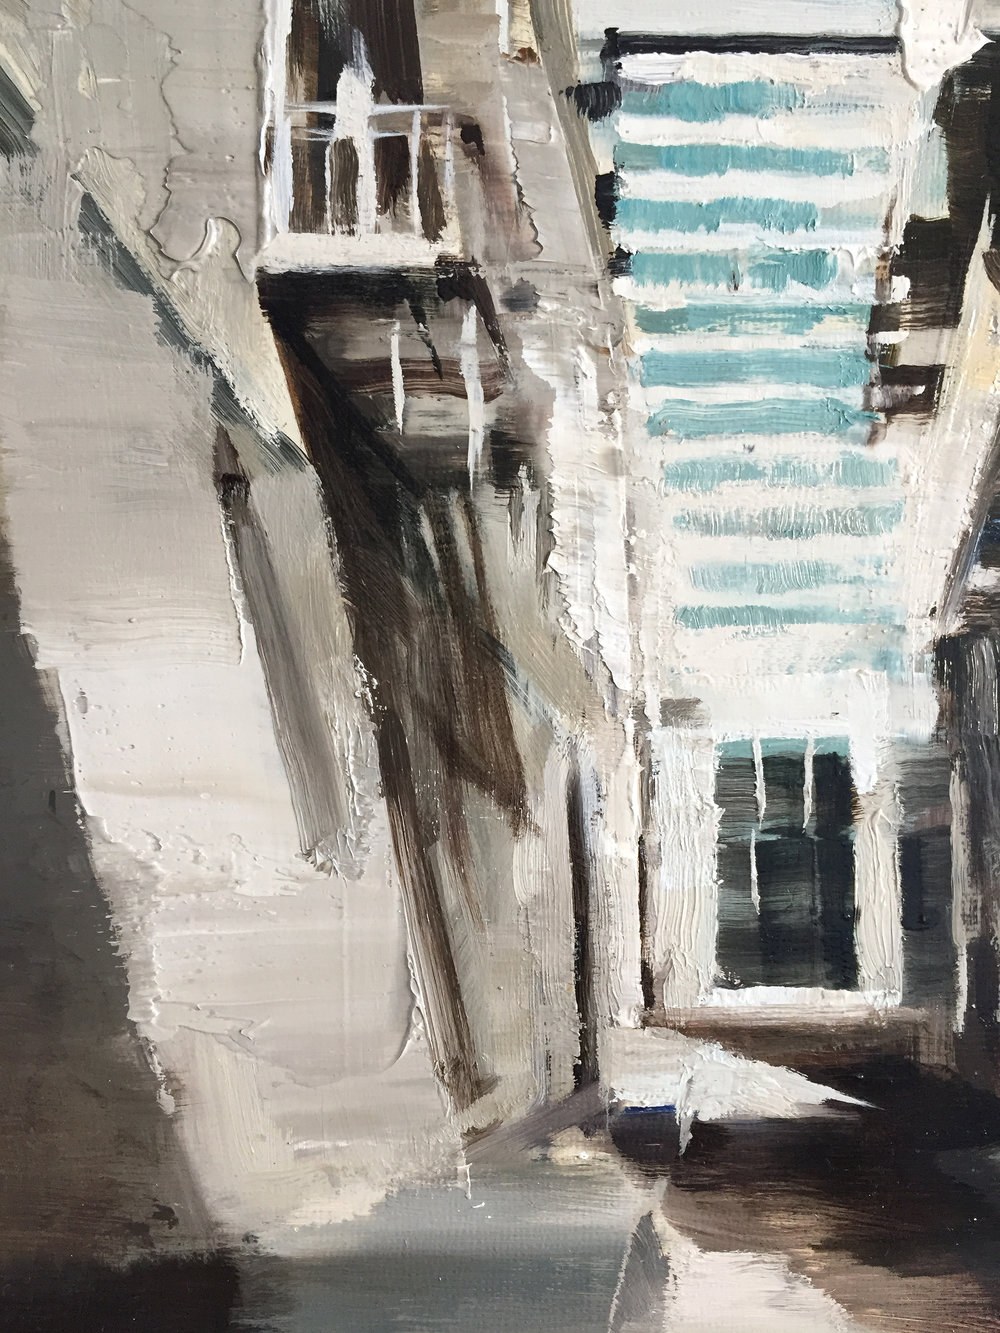 Alleyway 16 X 12 inches oil on panel Framed